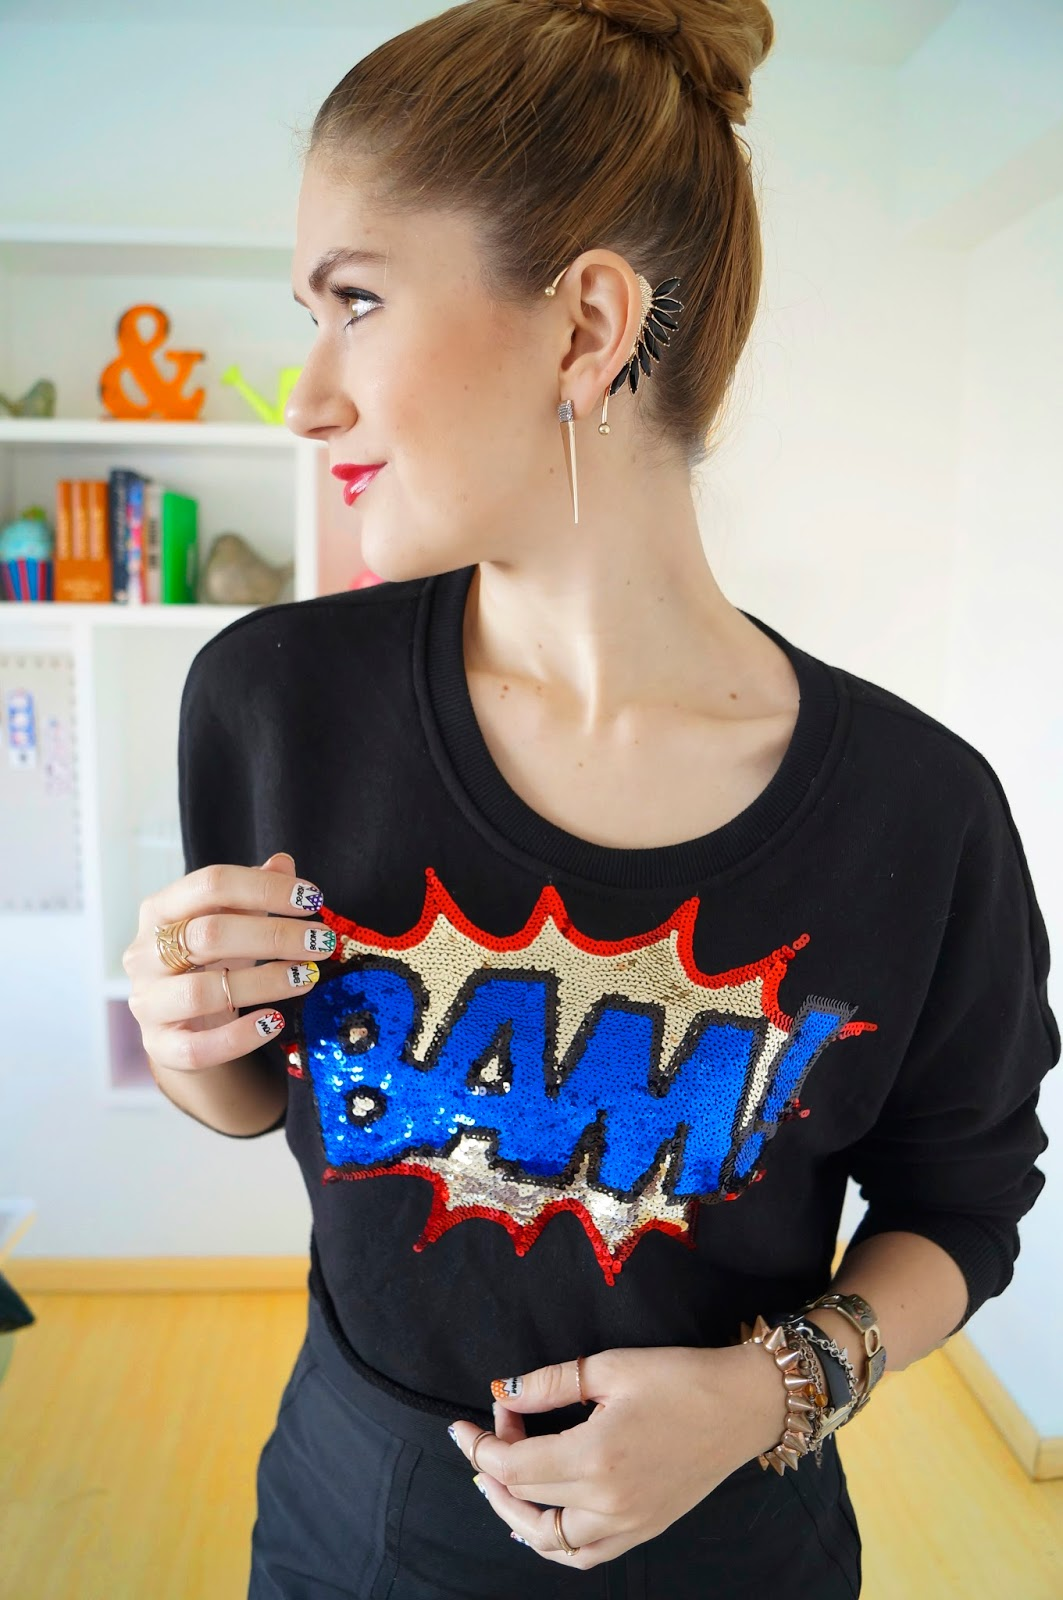 Pop Art Outfit, Pop Art Trend, Summer 2014 Trend, Fashion Blog, Trendy Outfit 2014, Forever 21 Sweater, Ear Cuff Outfit, Bun Hairstyle